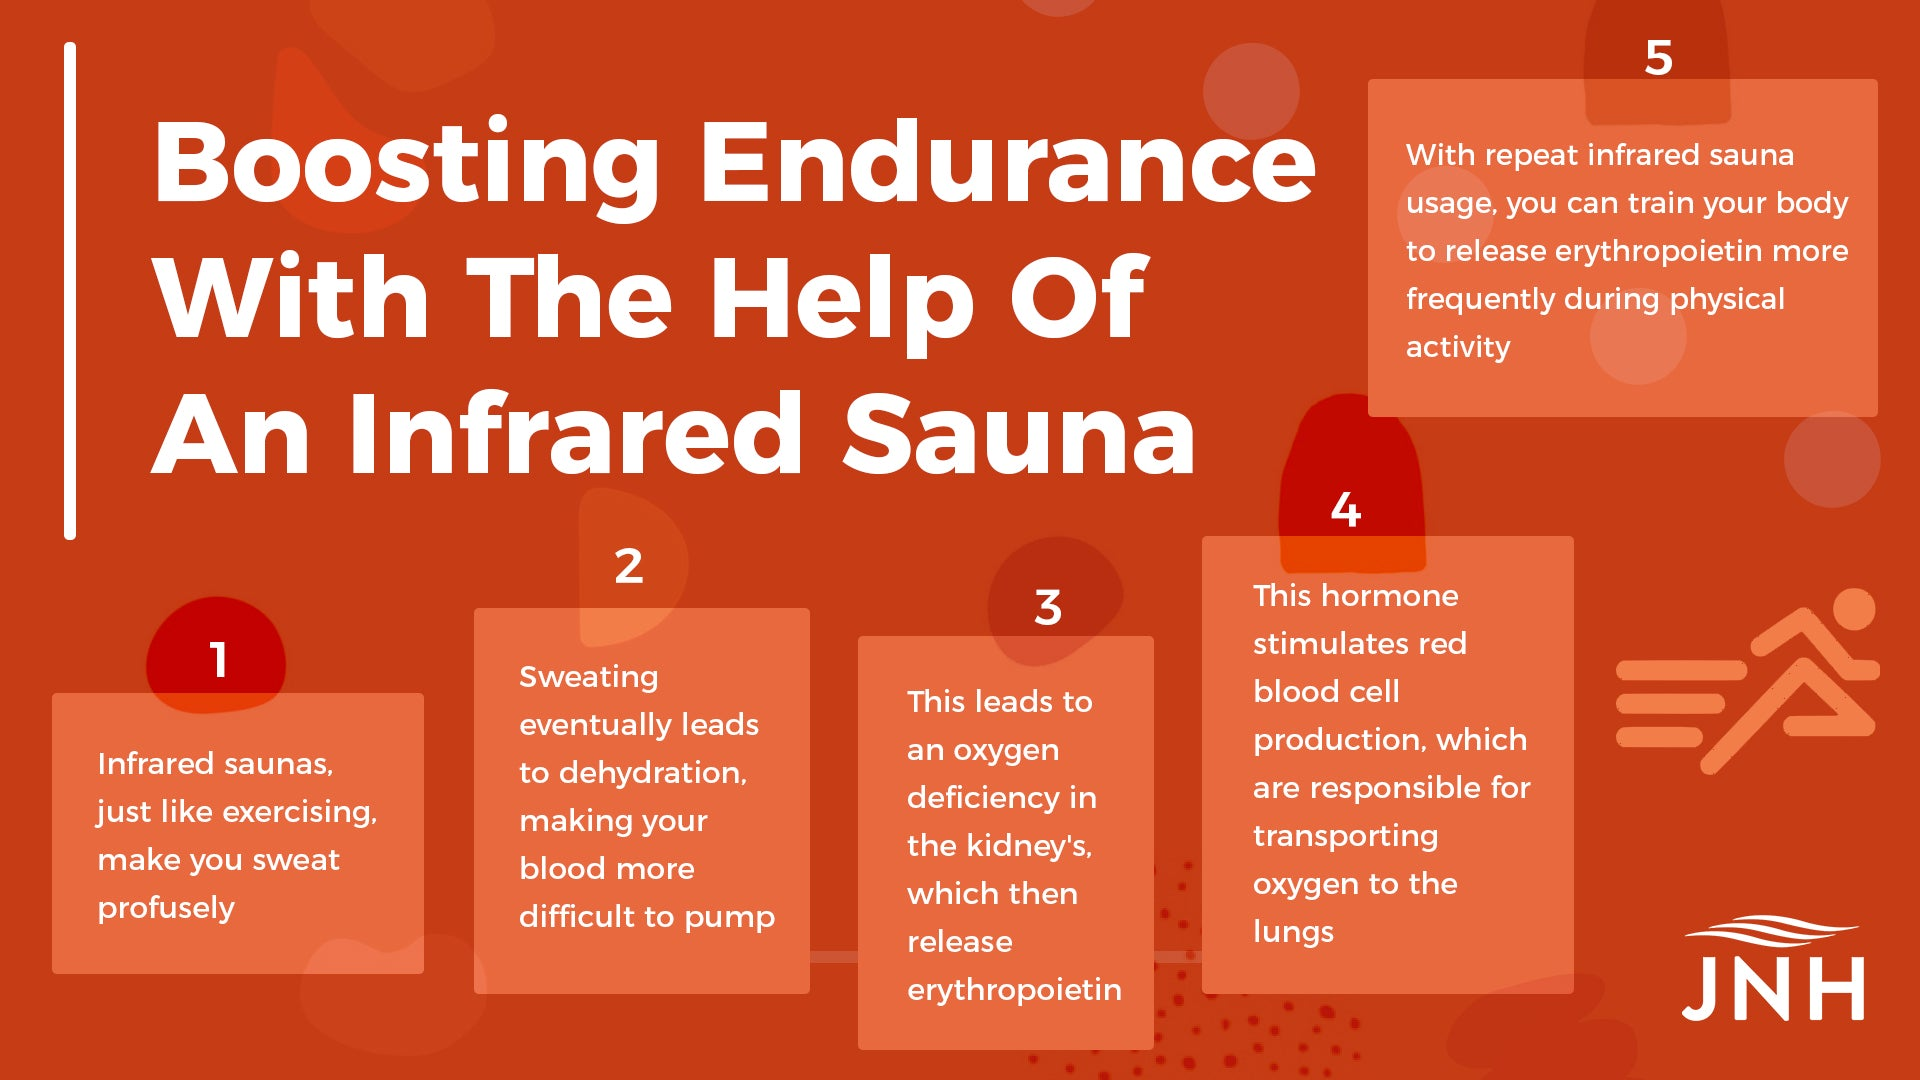 Boosting Endurance With The Help Of An Infrared Sauna: Infrared saunas, just like exercising, make you sweat profusely, Sweating eventually leads to dehydration, making your blood more difficult to pump, This leads to an oxygen deficiency in the kidney's, which then release erythropoietin, This hormone stimulates red blood cell production, which are responsible for transporting oxygen to the lungs, With repeat infrared sauna usage, you can train your body to release erythropoietin more frequently during physical activity